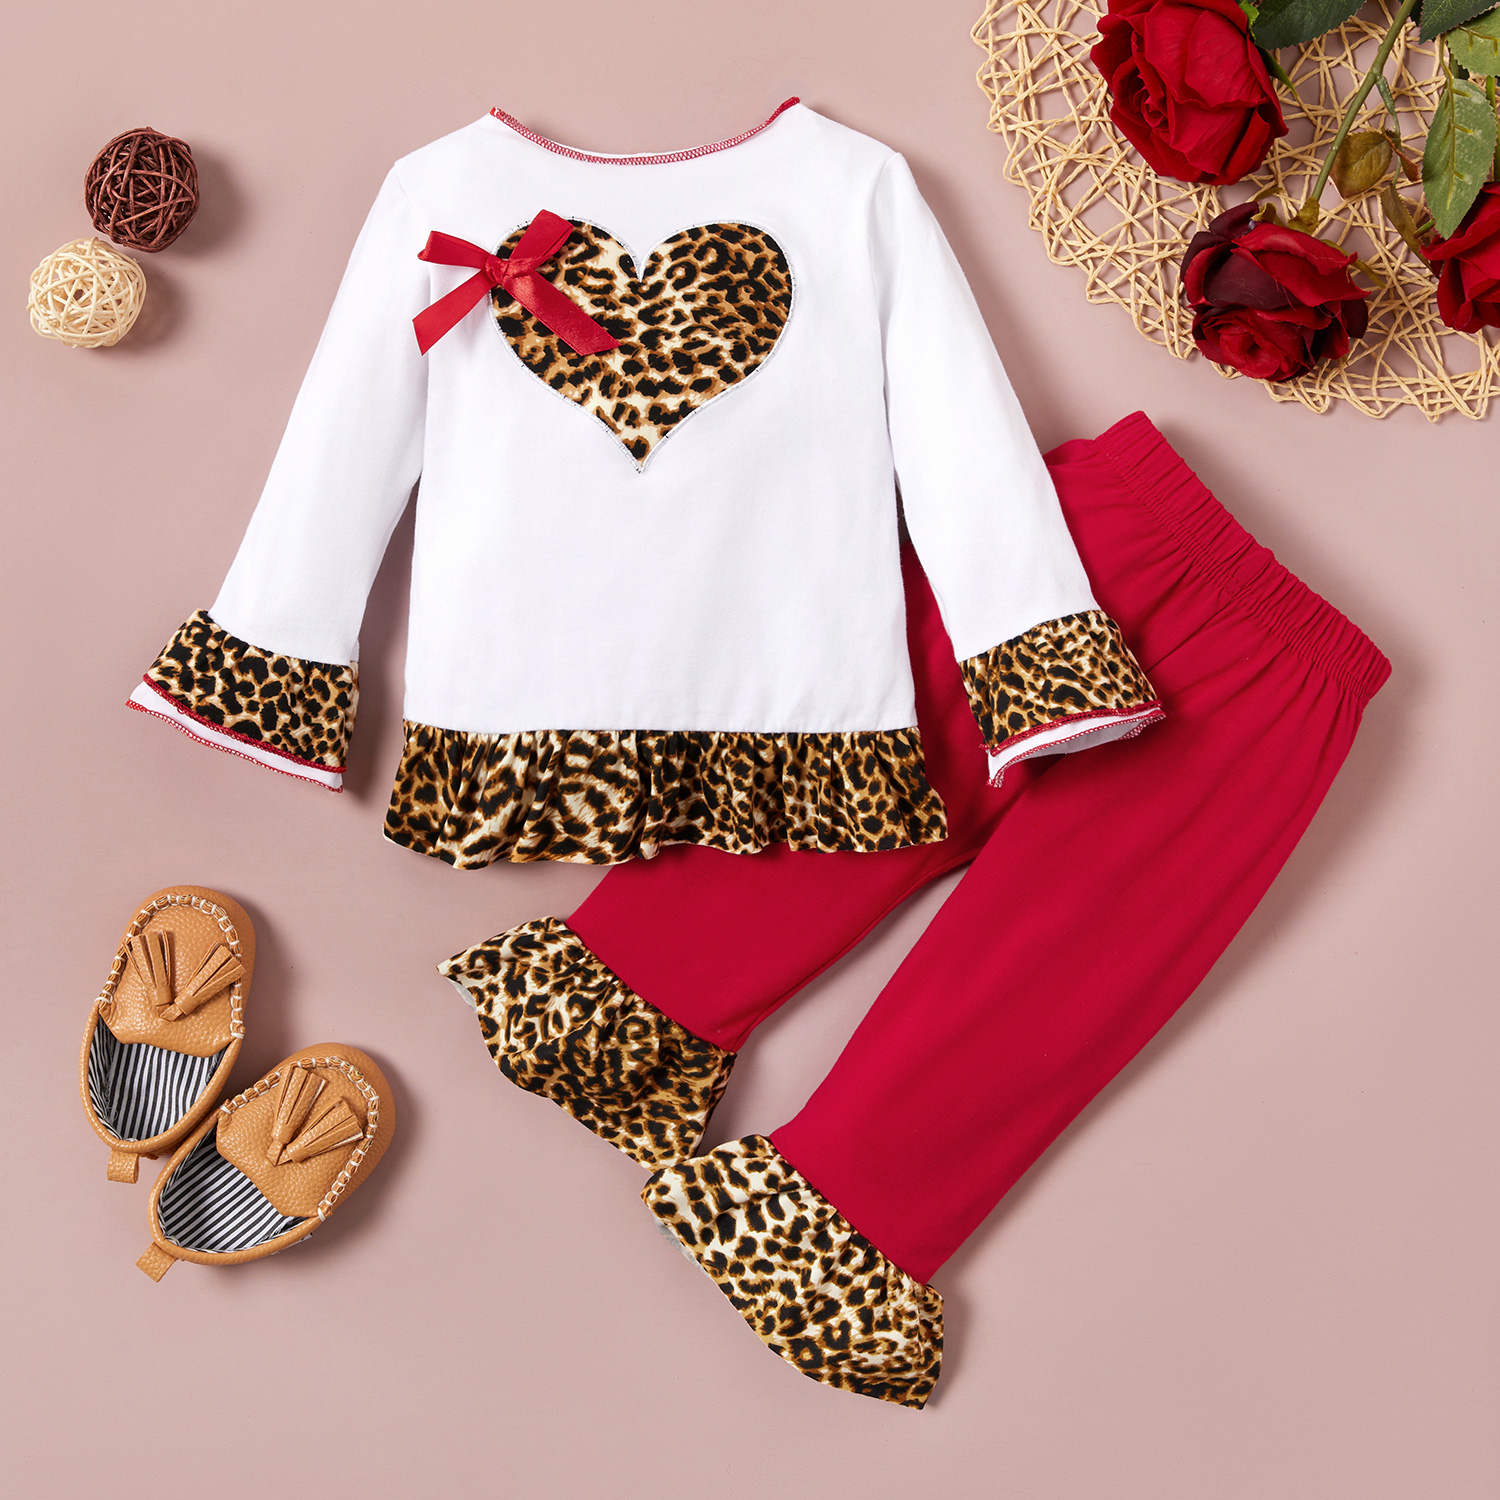 Leopard Print Bell sleeves Top and Bellbottom Pants Set